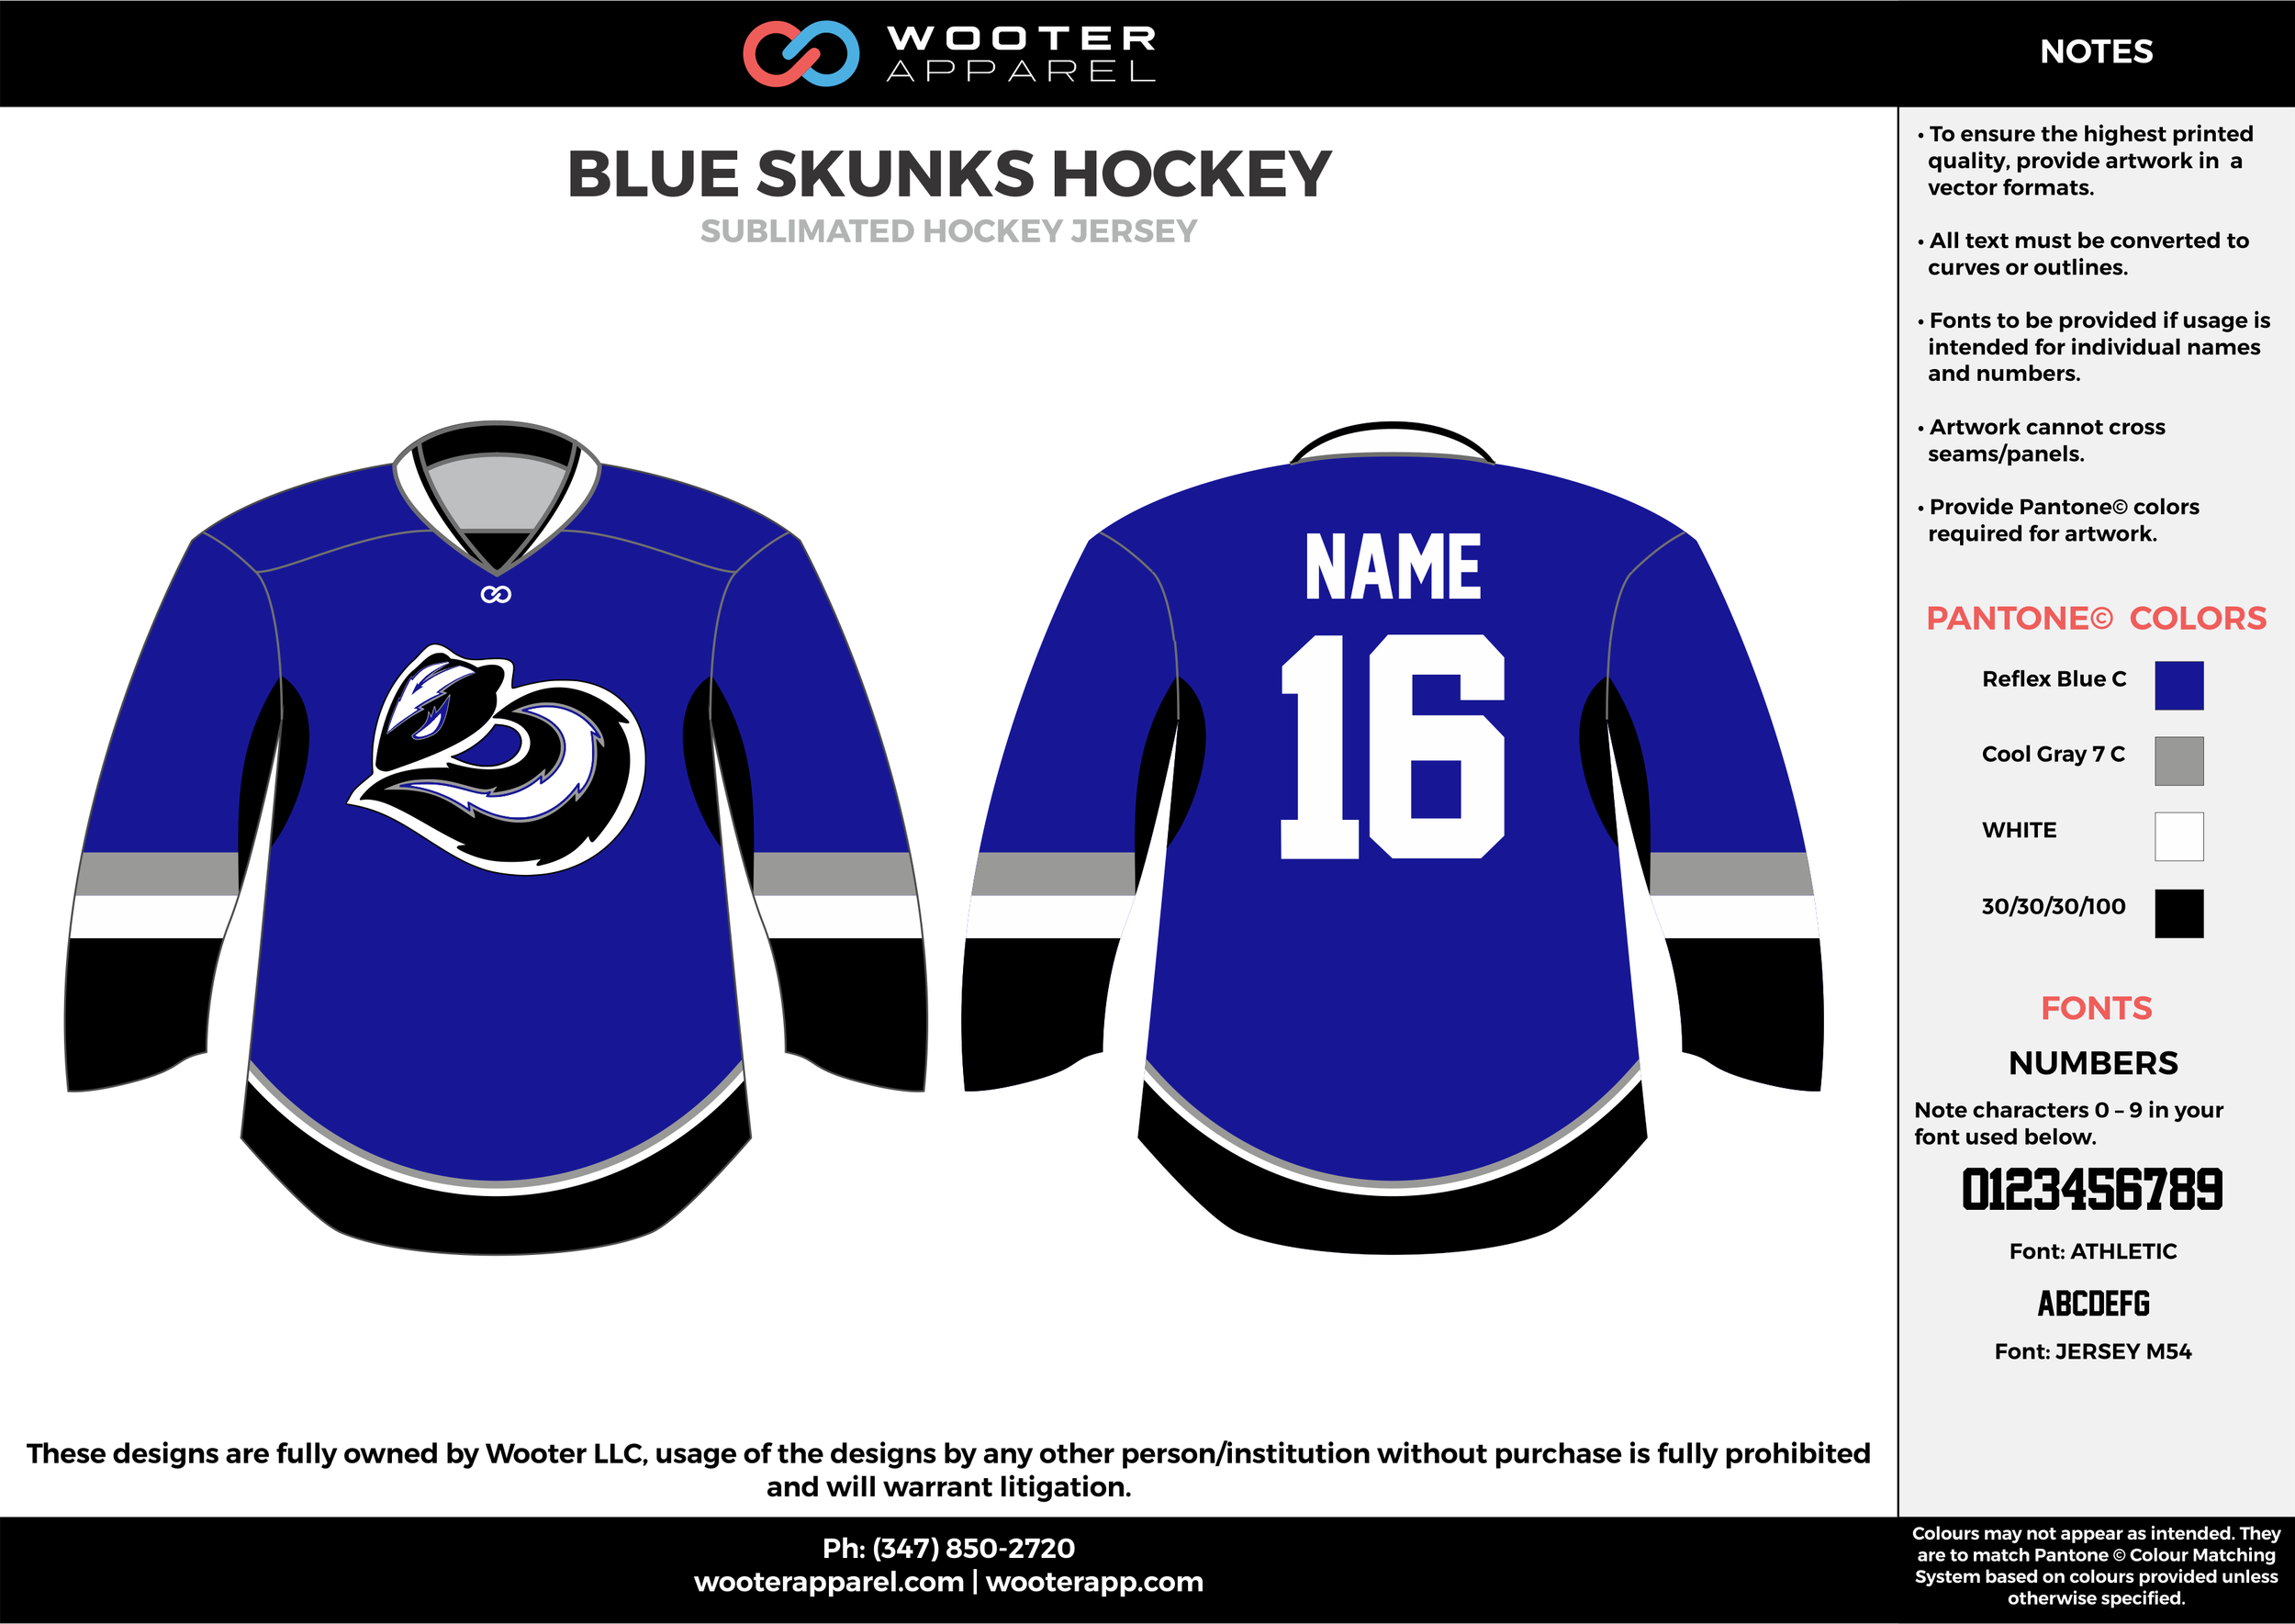 BLUE SKUNKS HOCKEY blue black white gray hockey uniforms jerseys